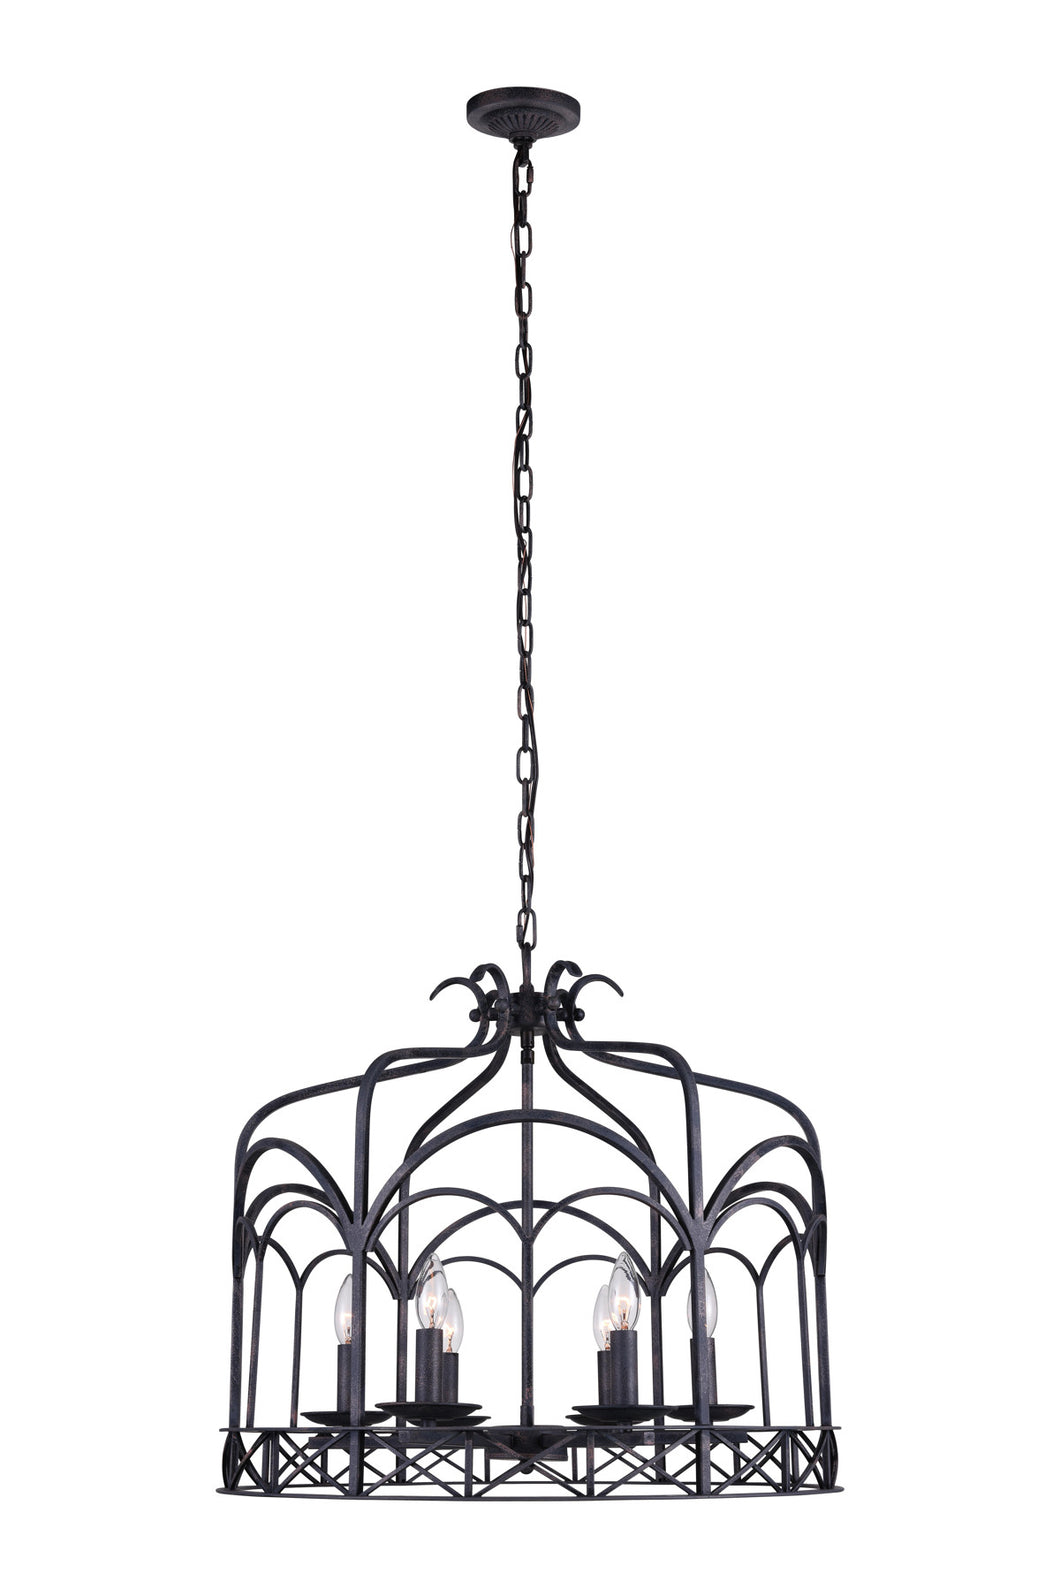 6 Light Up Chandelier with Grayish Brown finish